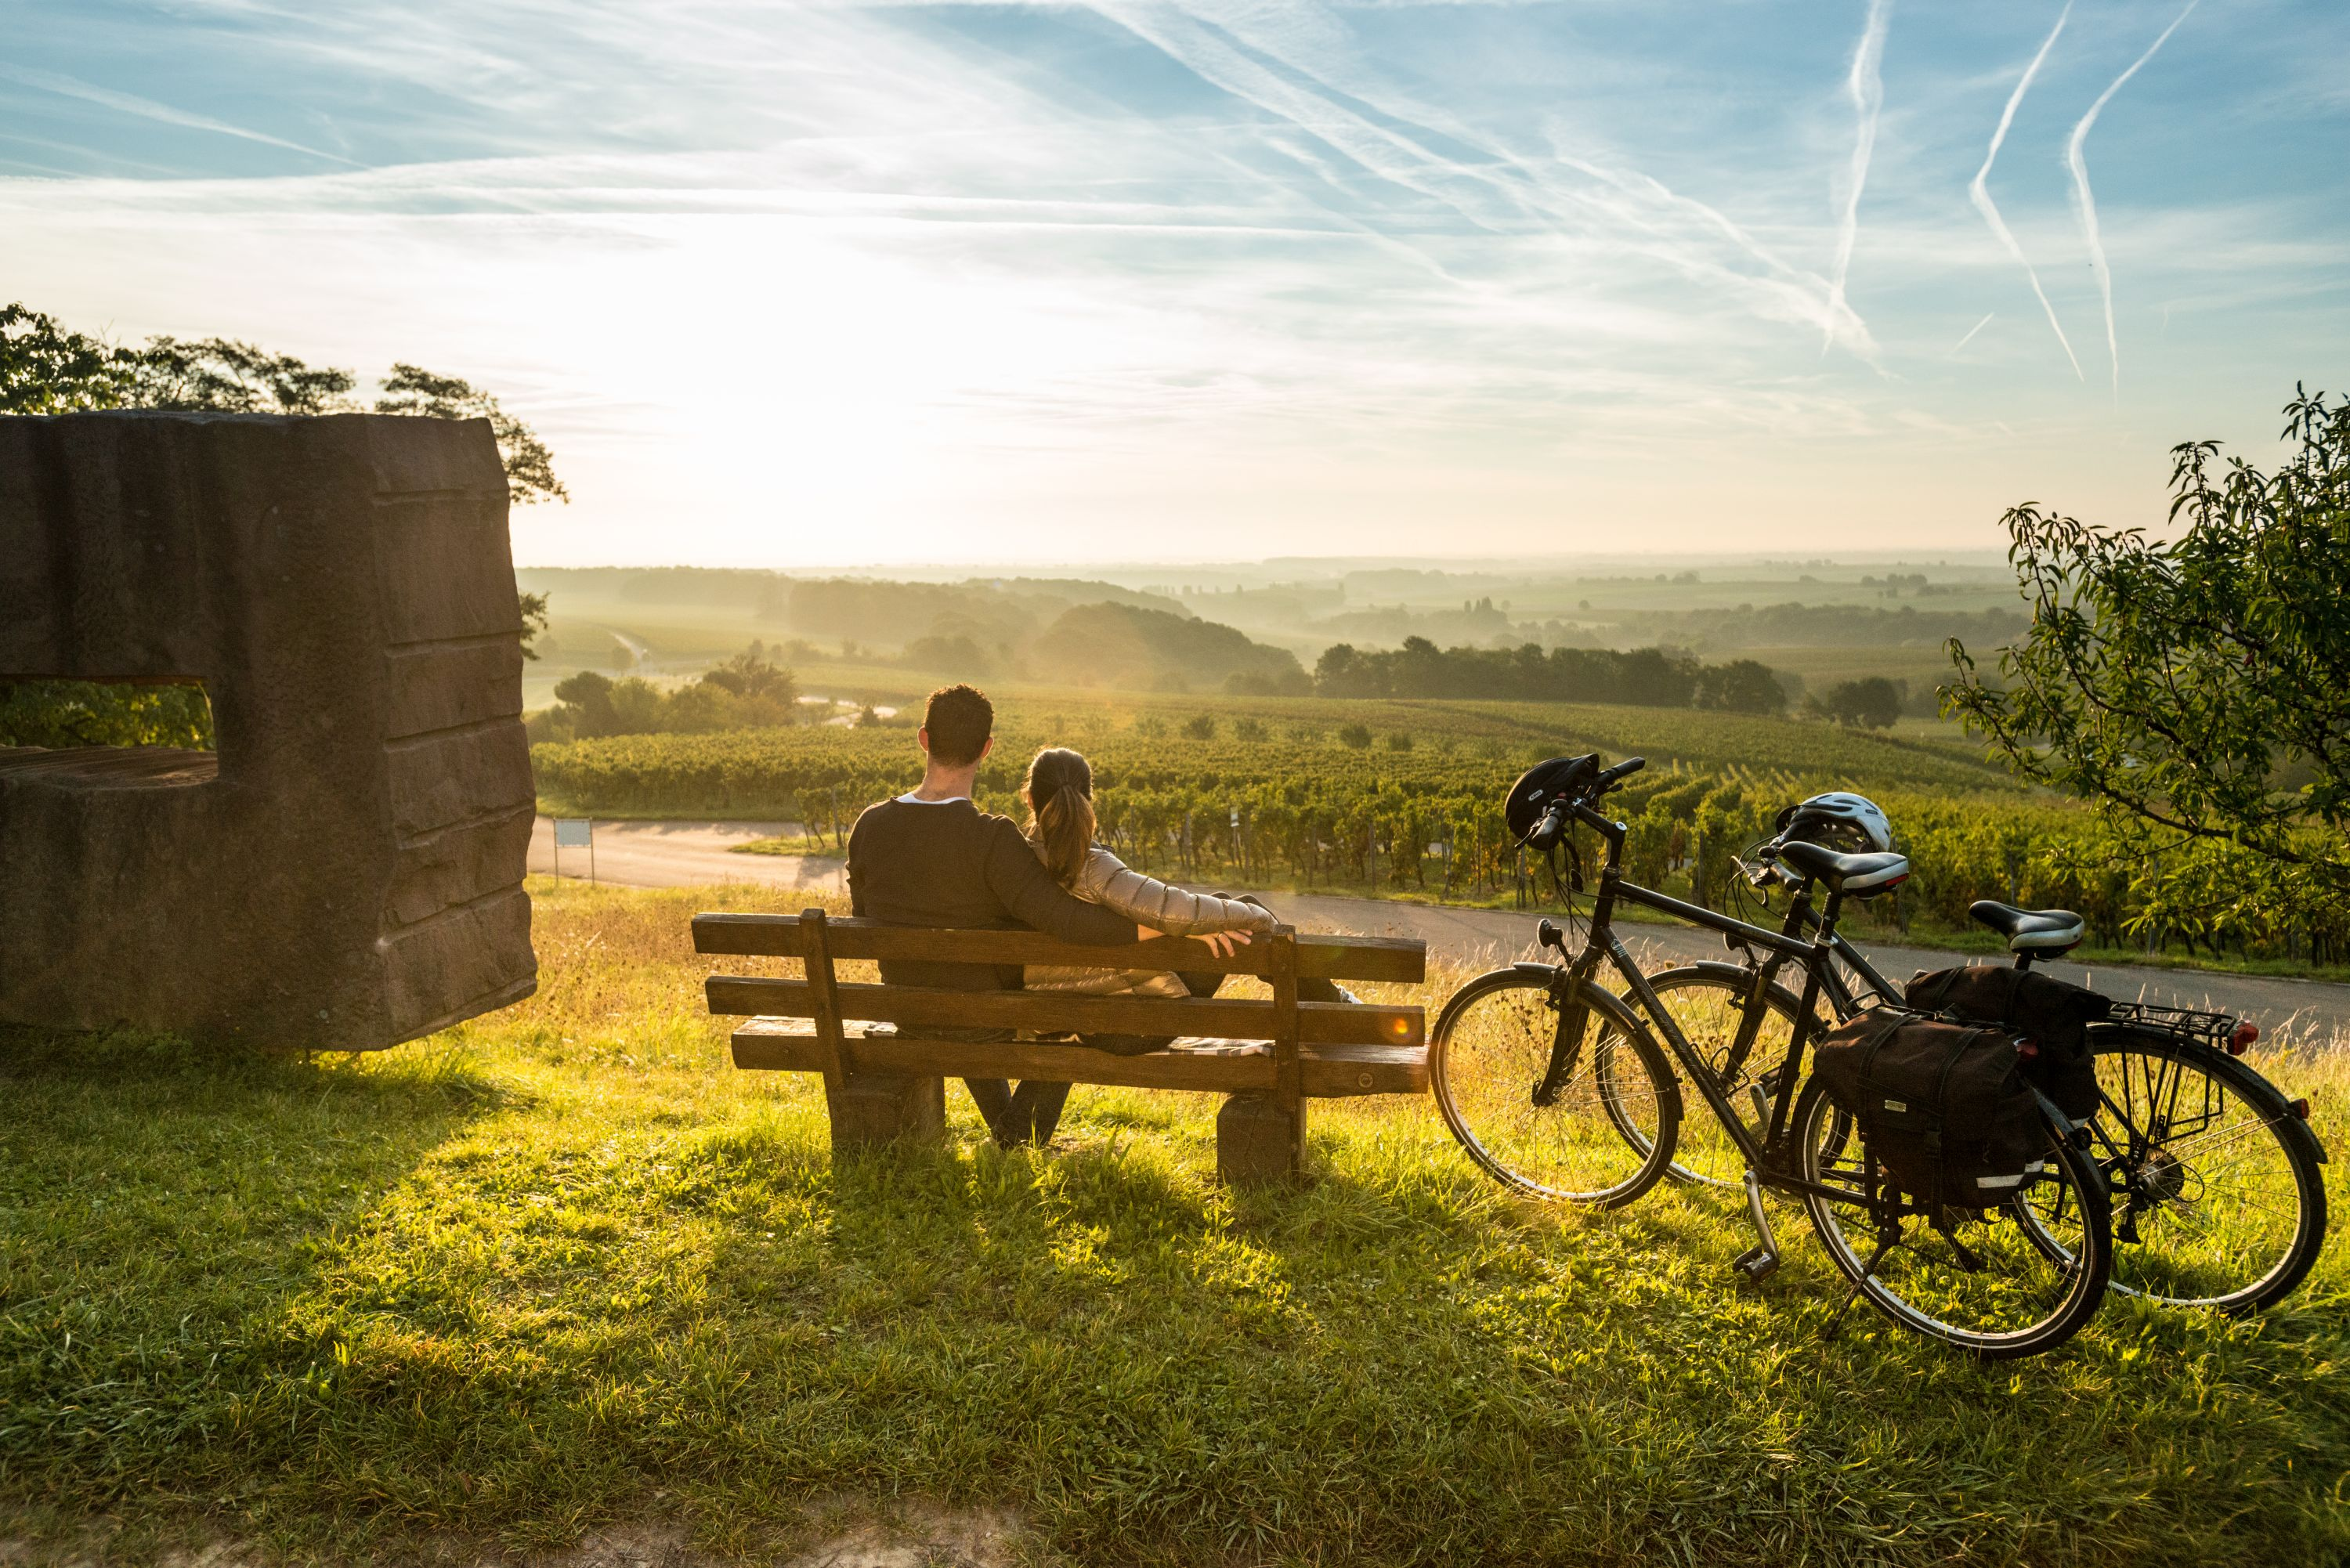 Cycling break with a view of the vineyards near Gleiszellen-Gleishorbach, Palatinate